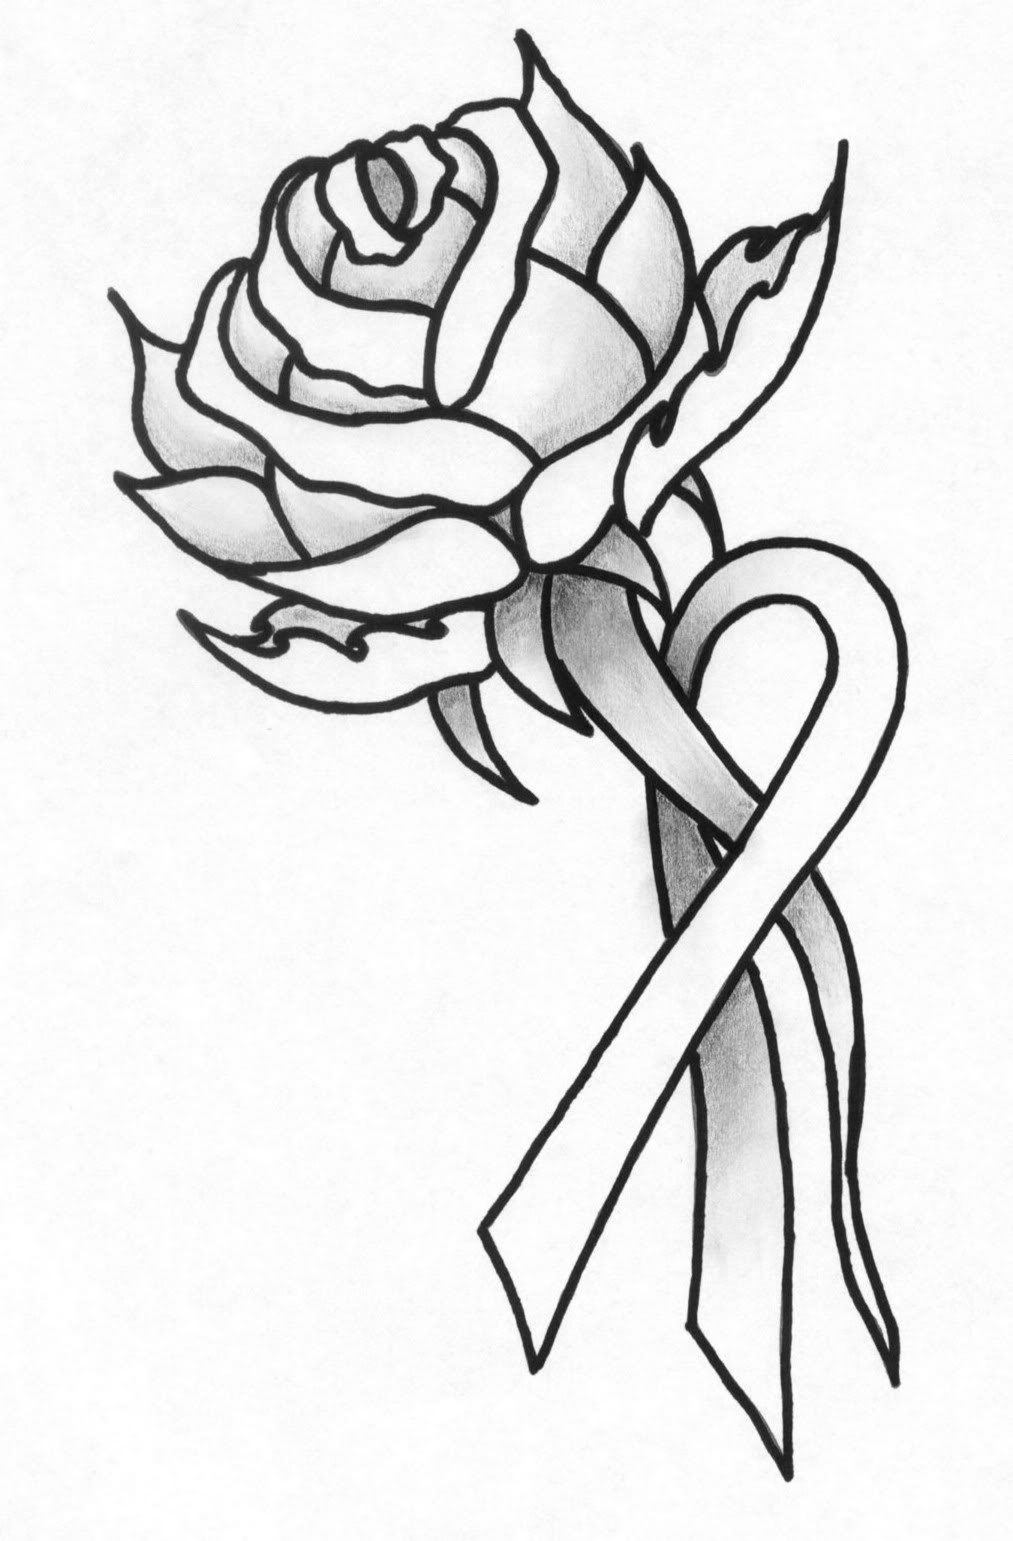 Cancer Ribbon Drawing At Getdrawings Free For Personal Use